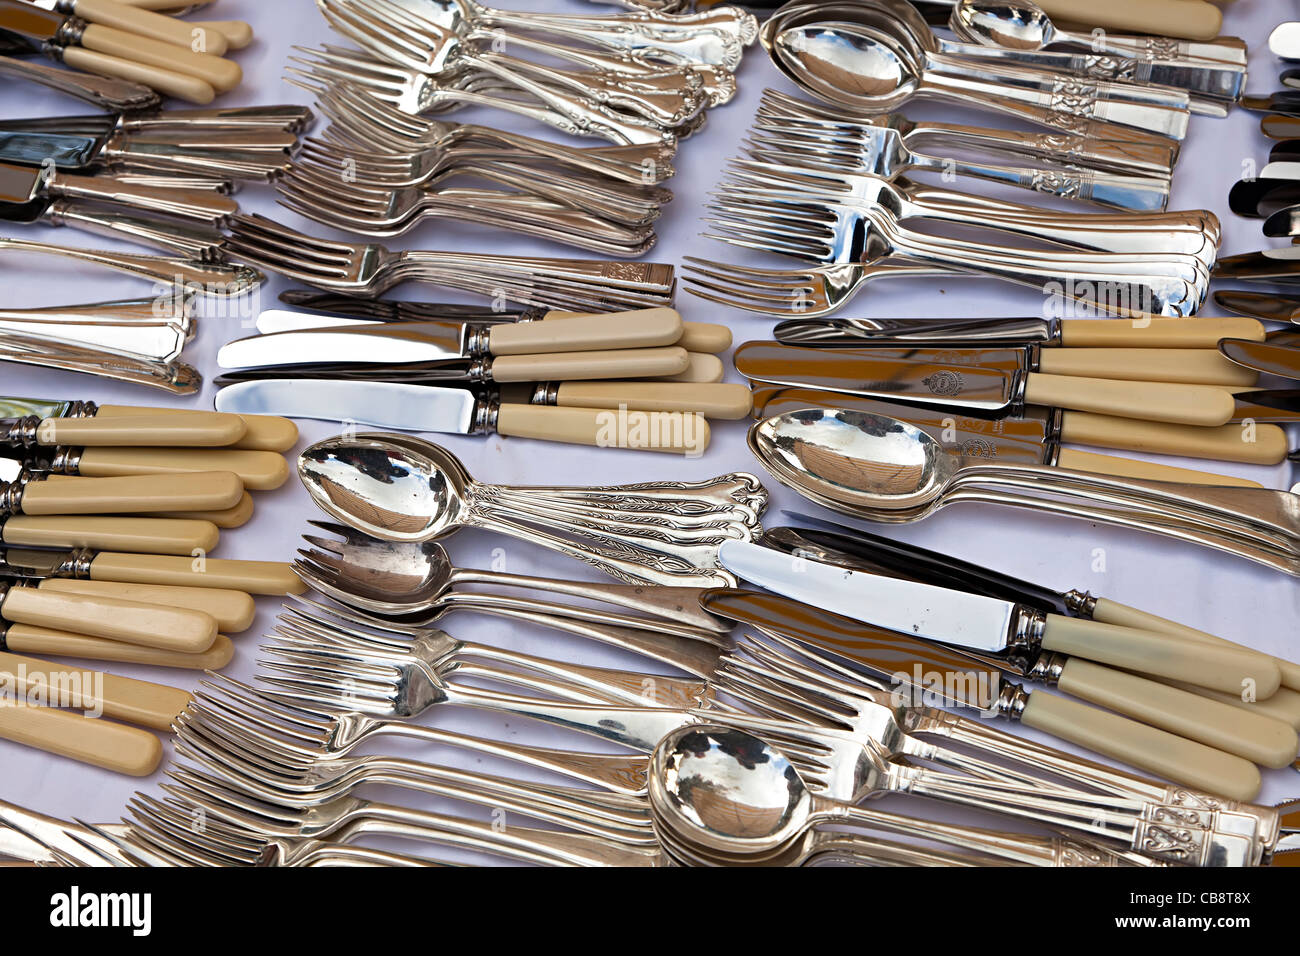 Second hand bone handled cutlery on sale at market stall Wales UK - Stock Image